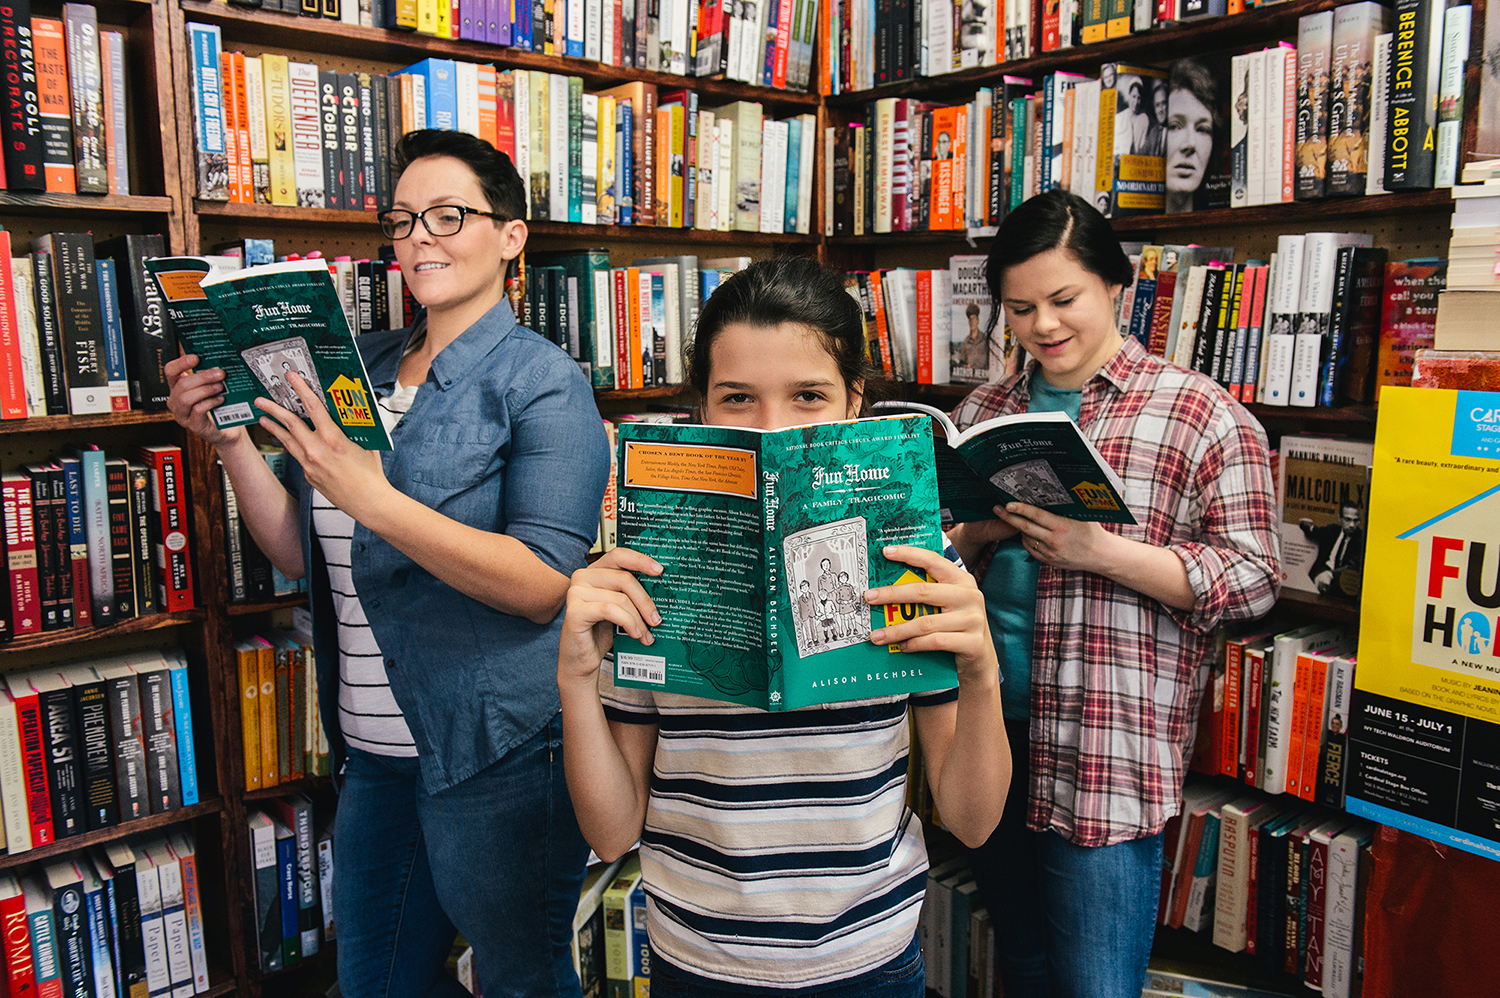 Cardinal Stage has partnered with several local book stores and is hosting a 'Fun Home' book club prior to the June 20 performance.